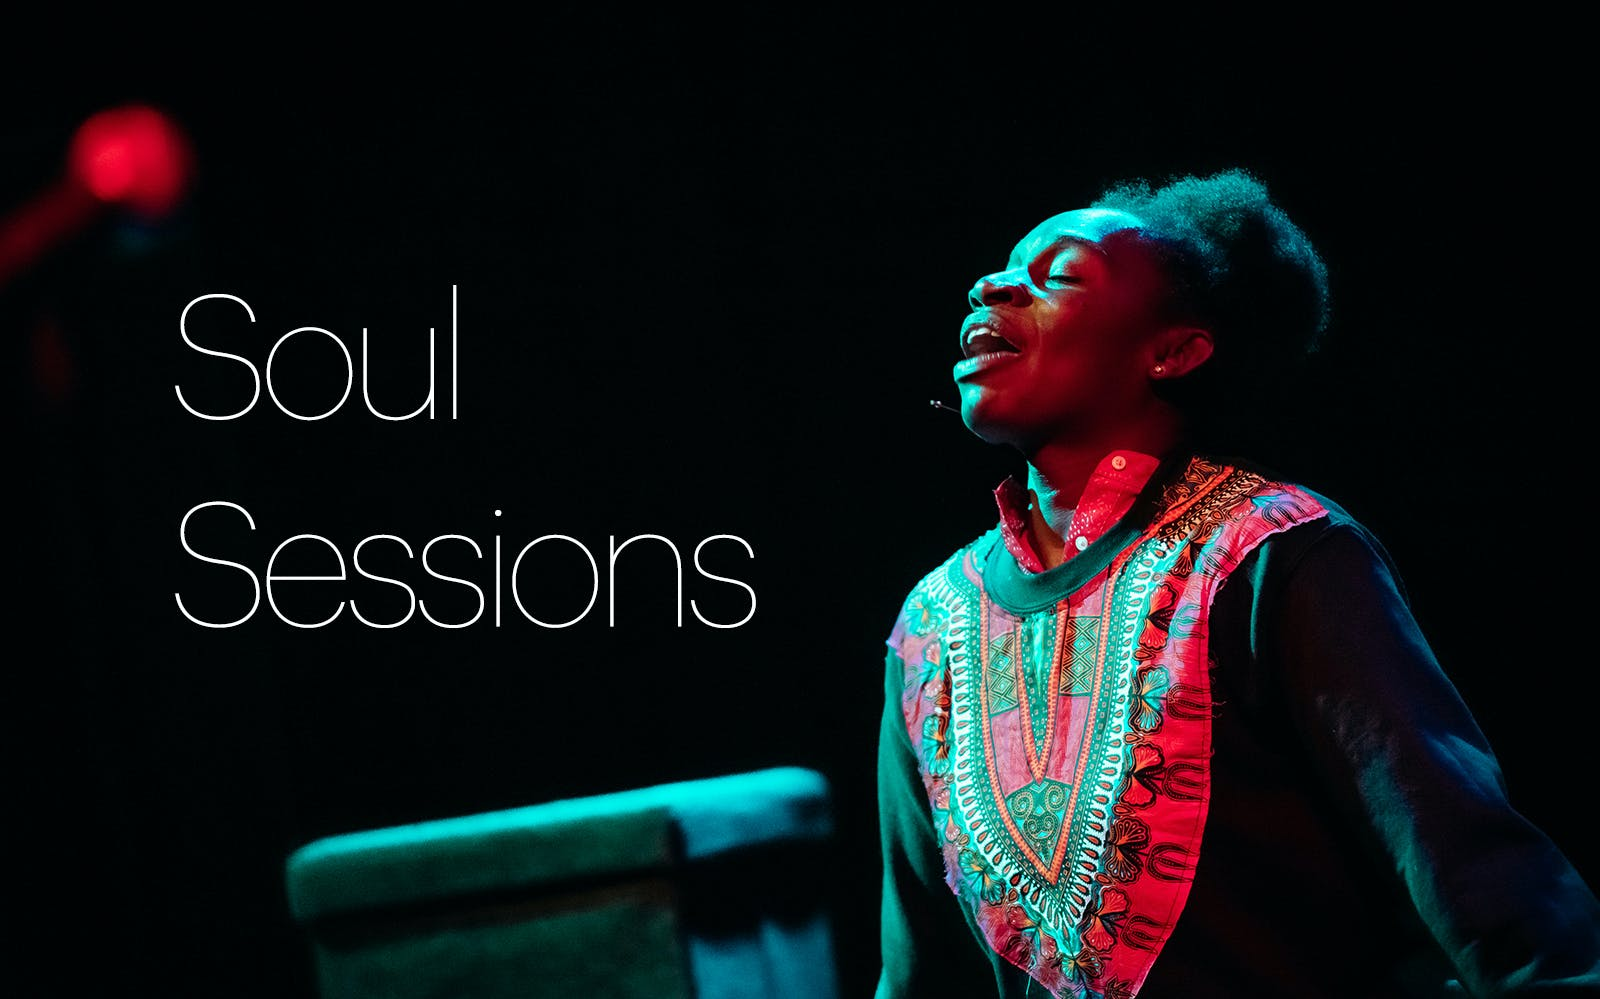 Best west end Shows Soul sessions